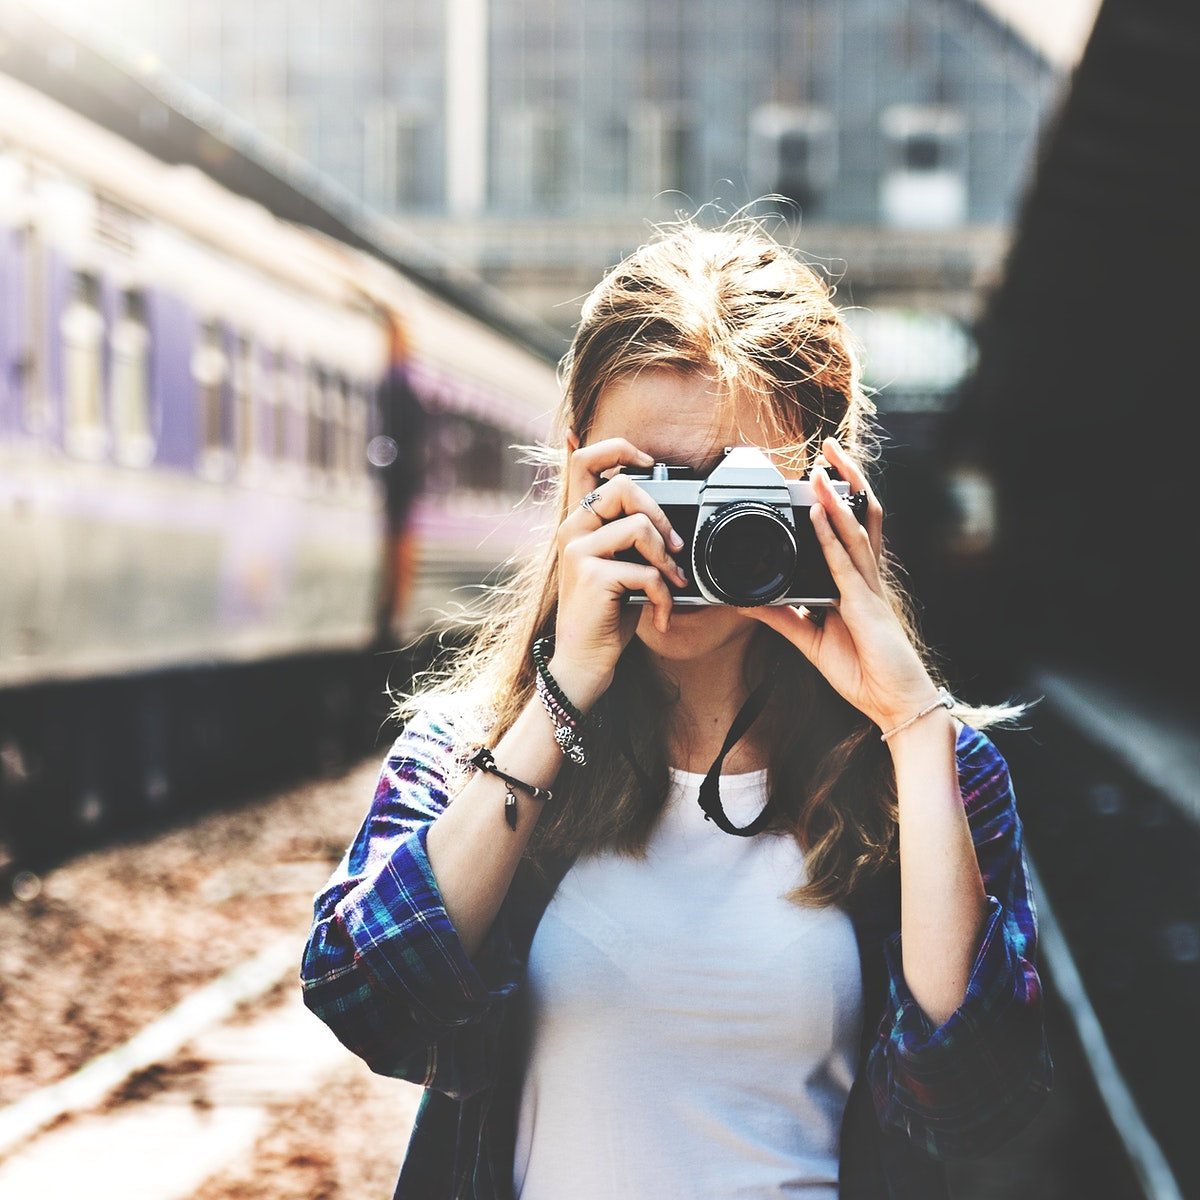 Young woman is taking photo with film camera